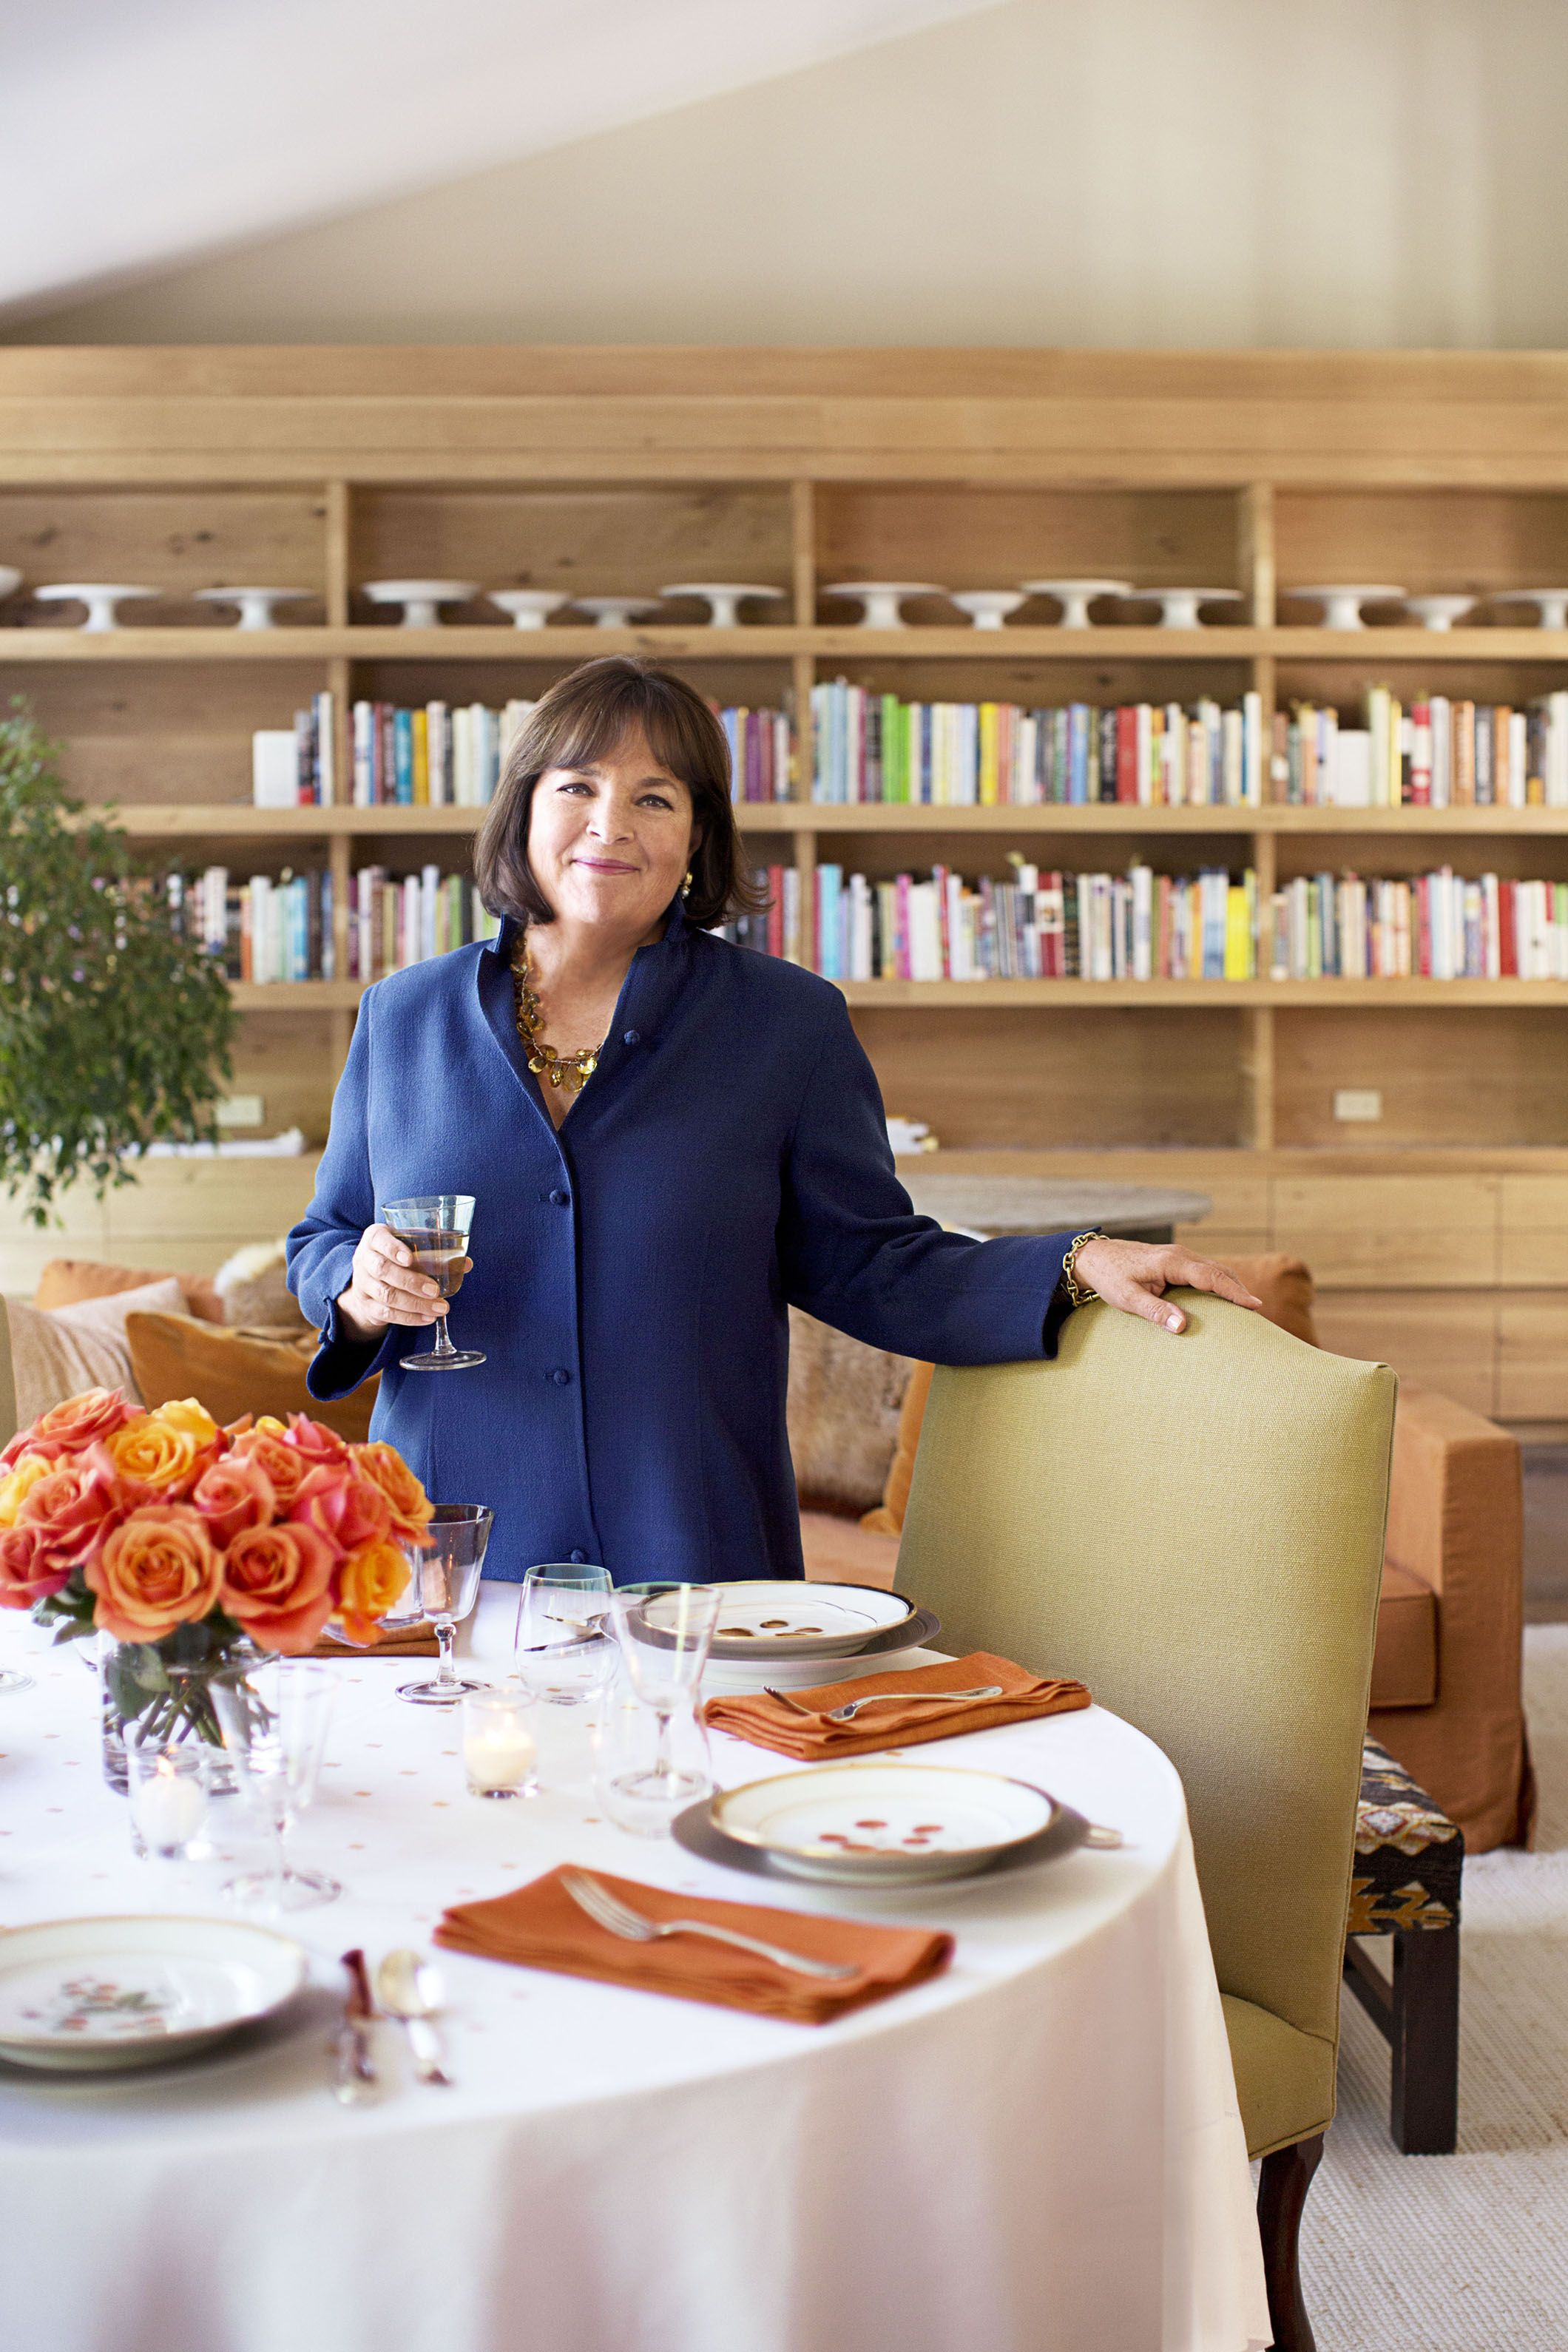 Ina Garten Bars 13 Things You Never Knew About Ina Garten Ina Garten Facts